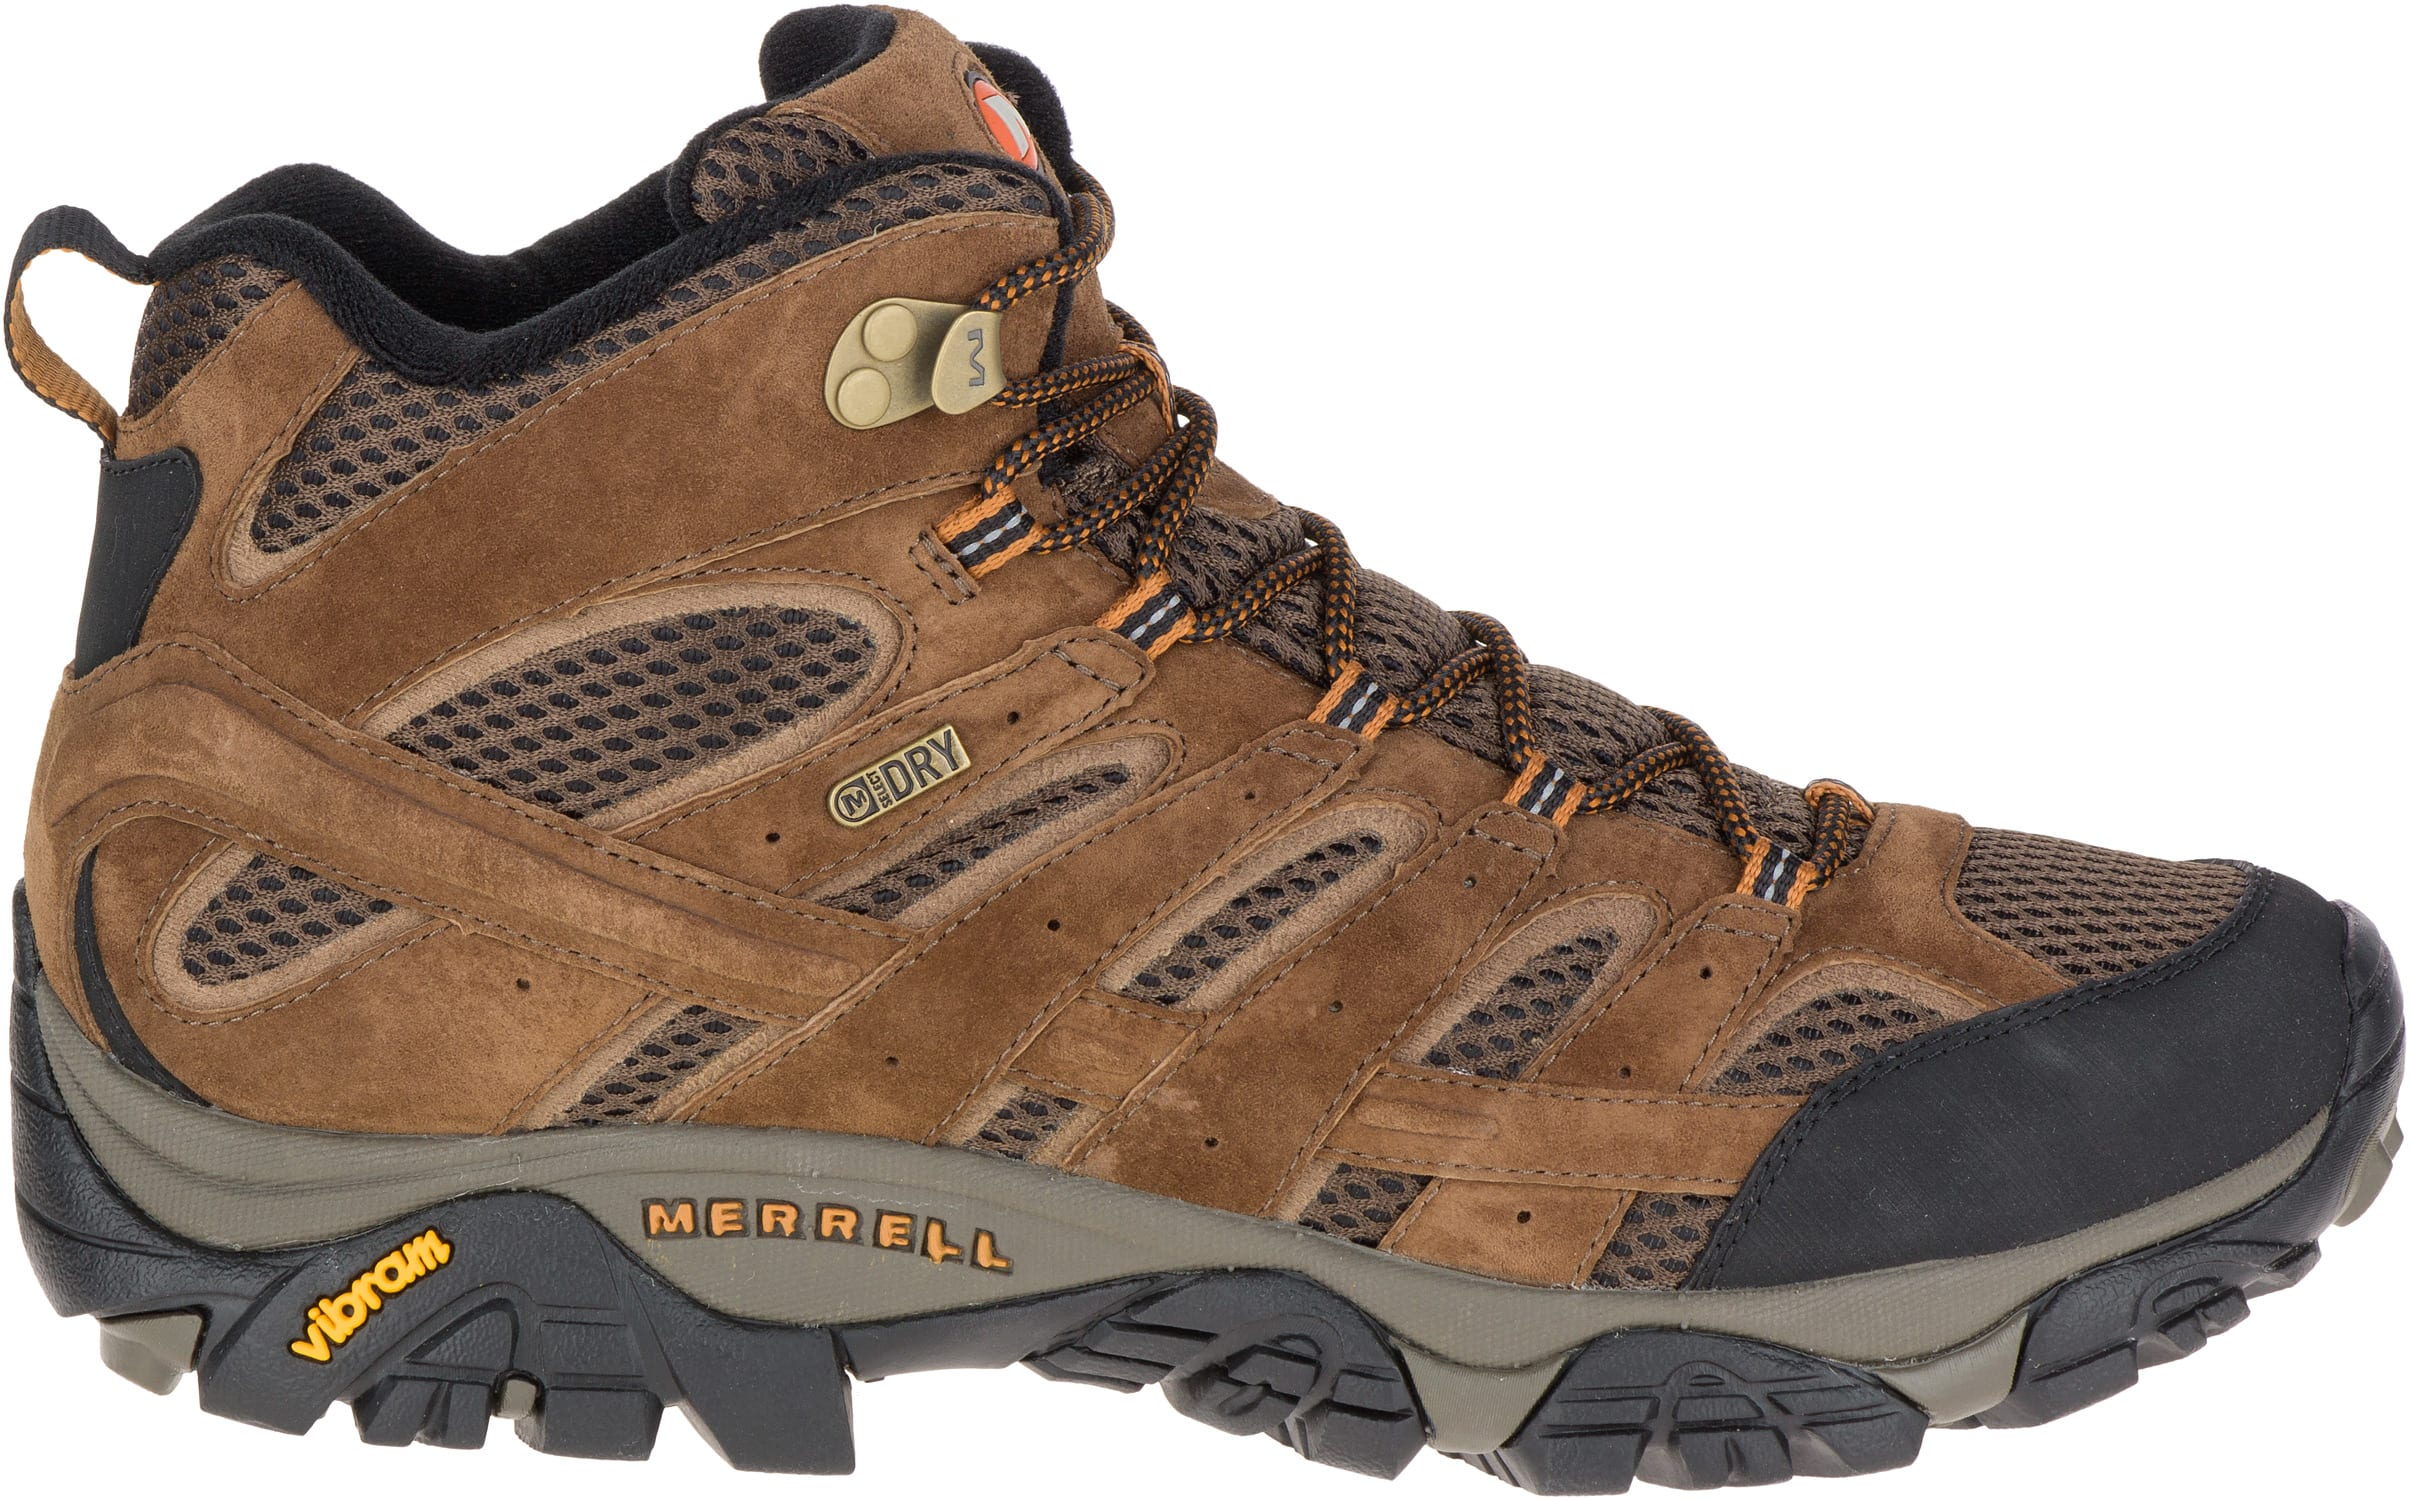 On Sale Merrell Moab 2 Mid Waterproof Hiking Boots 2018